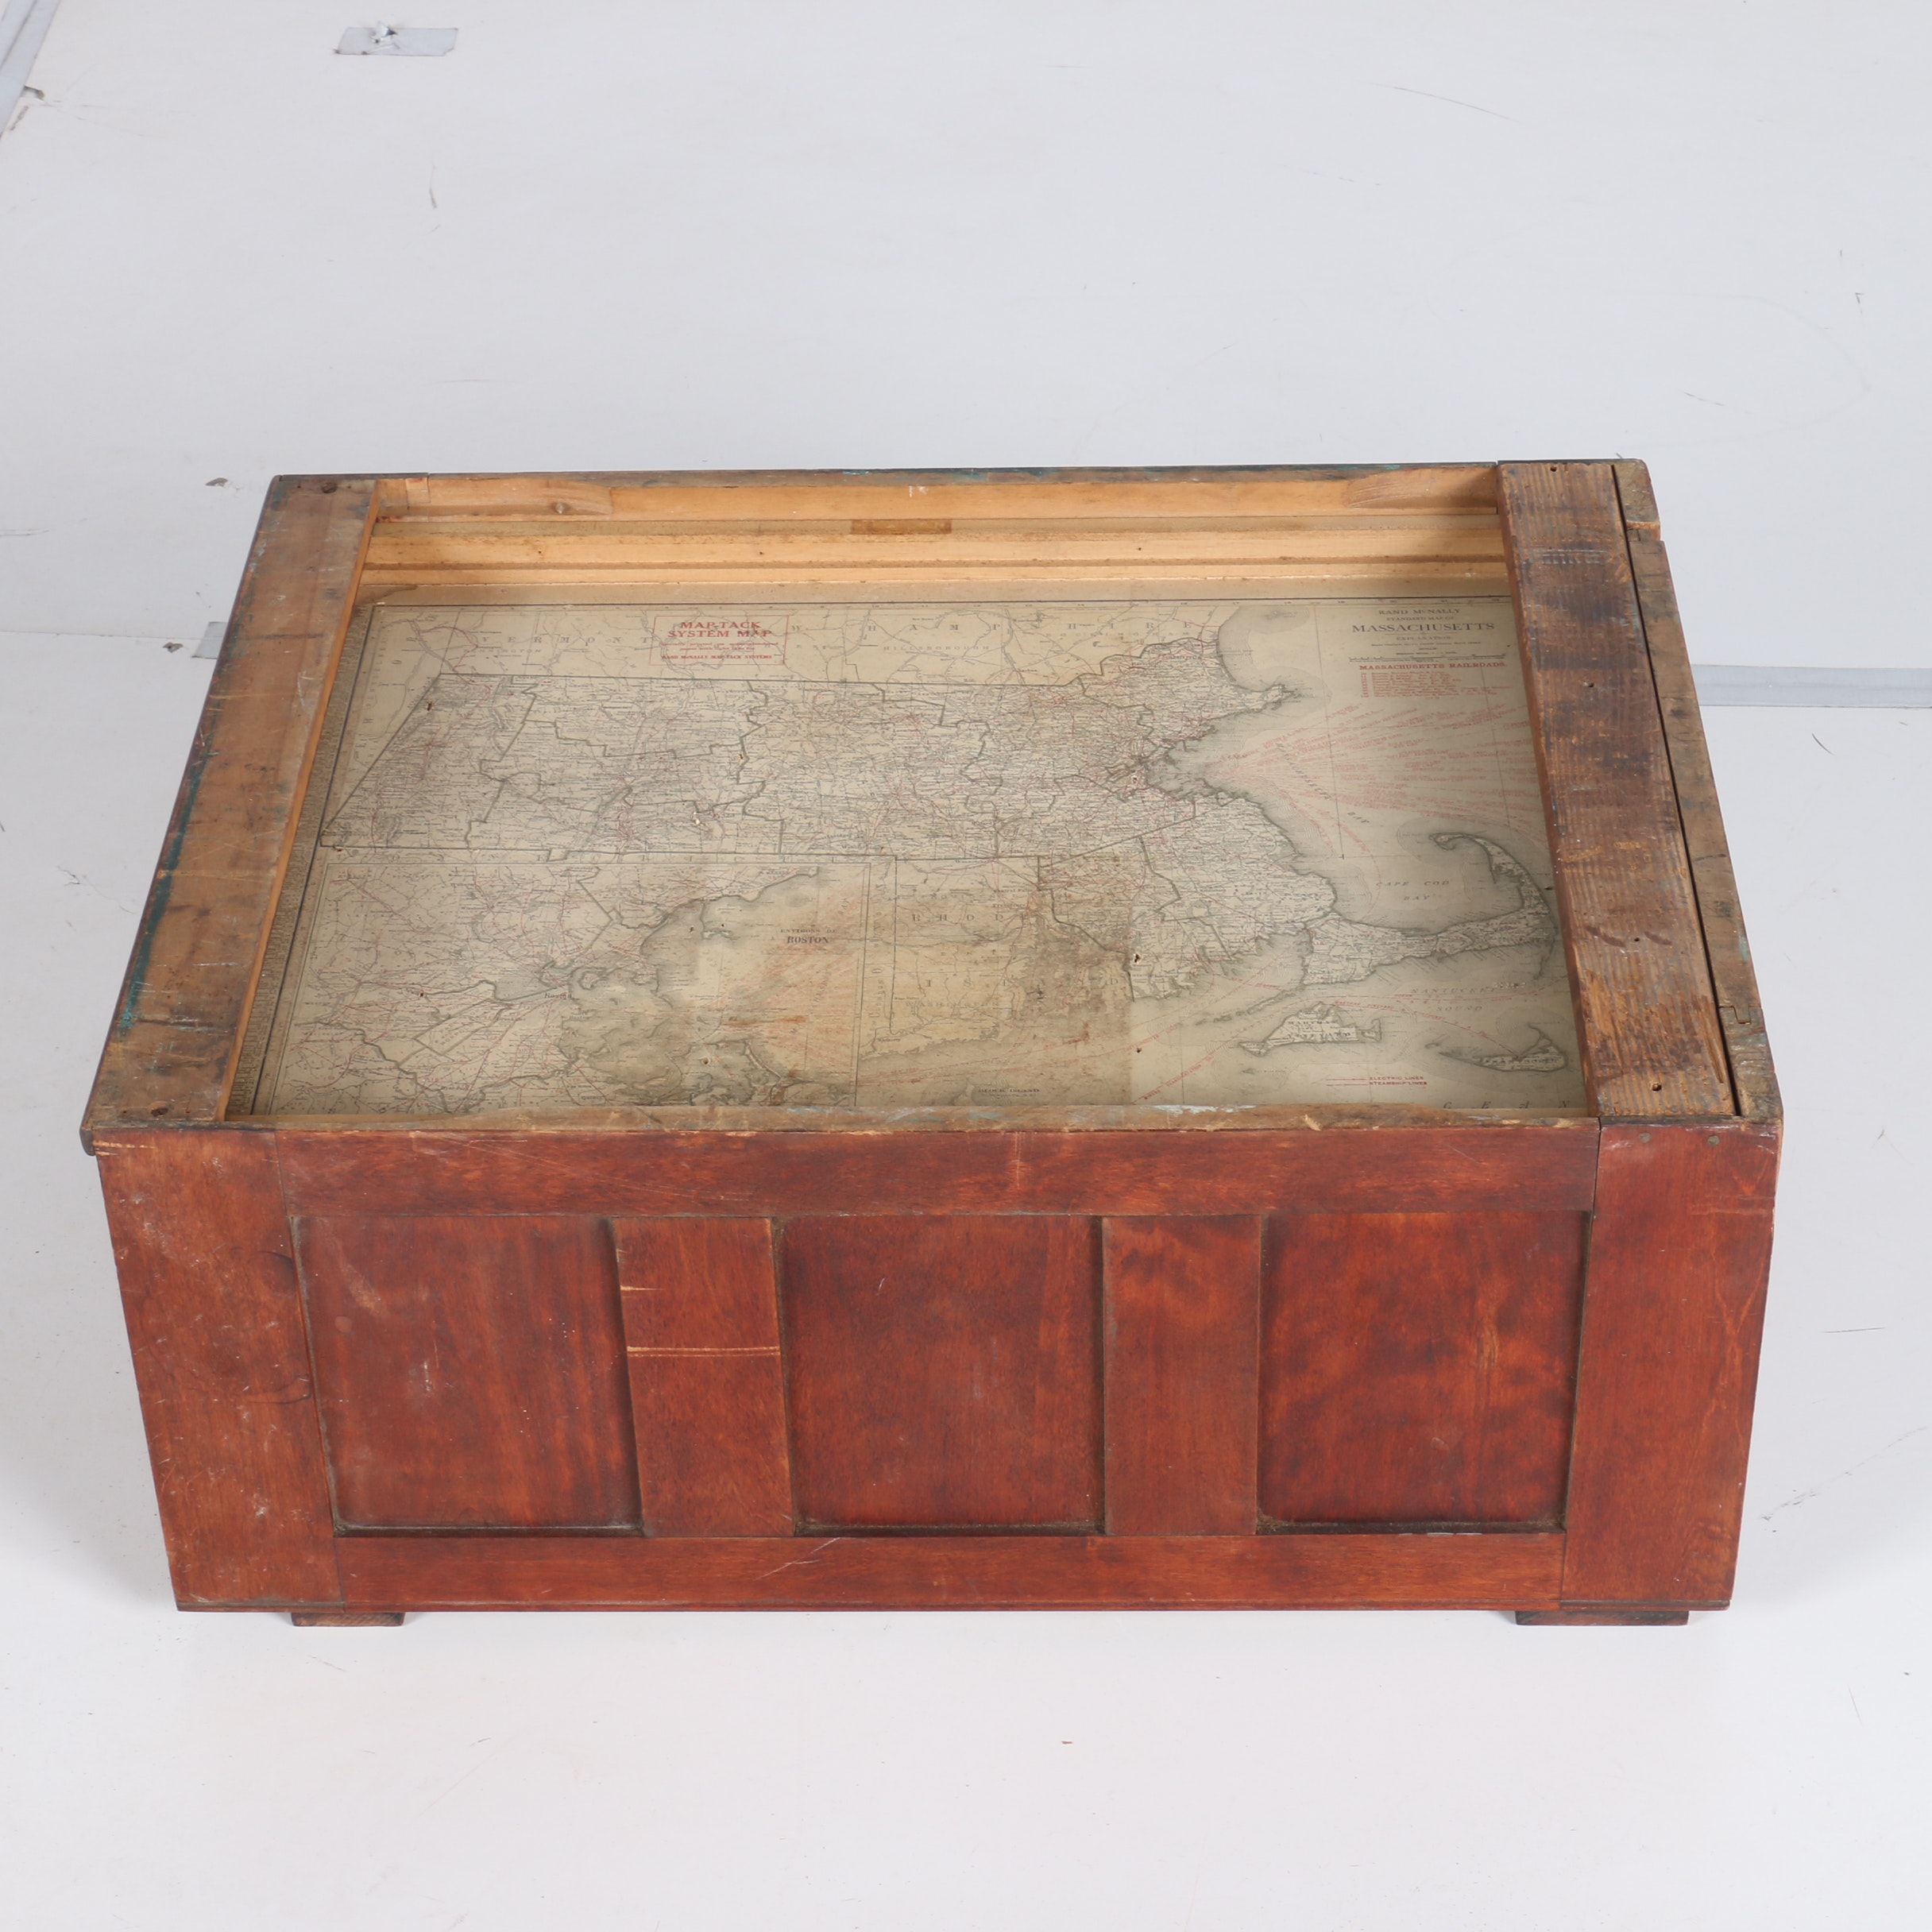 Antique Cherry Wood Rand McNally Map-Tack System Maps